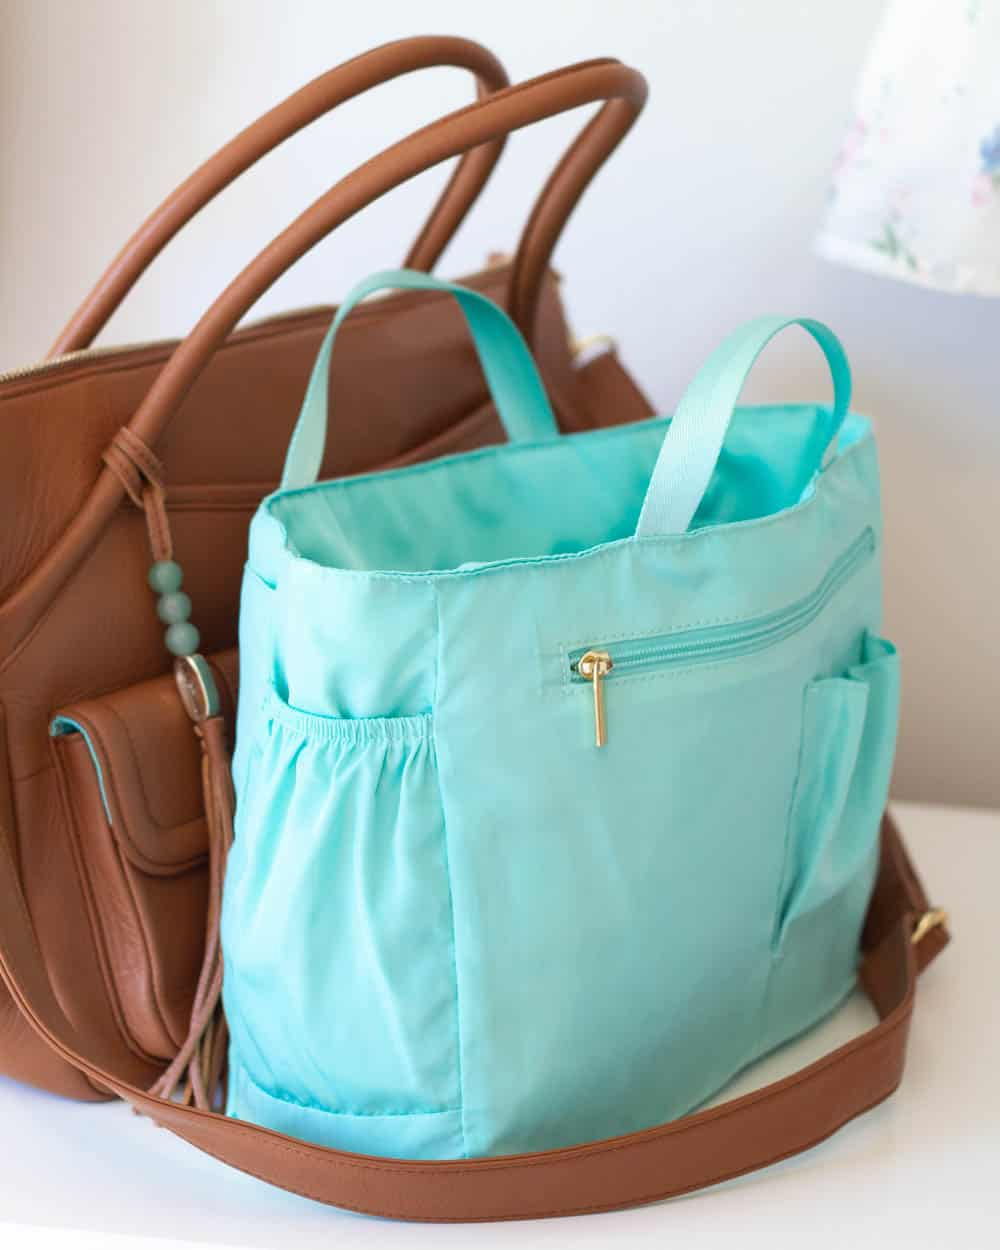 The bright jade colored organizer insert from a Lily Jade diaper bag.